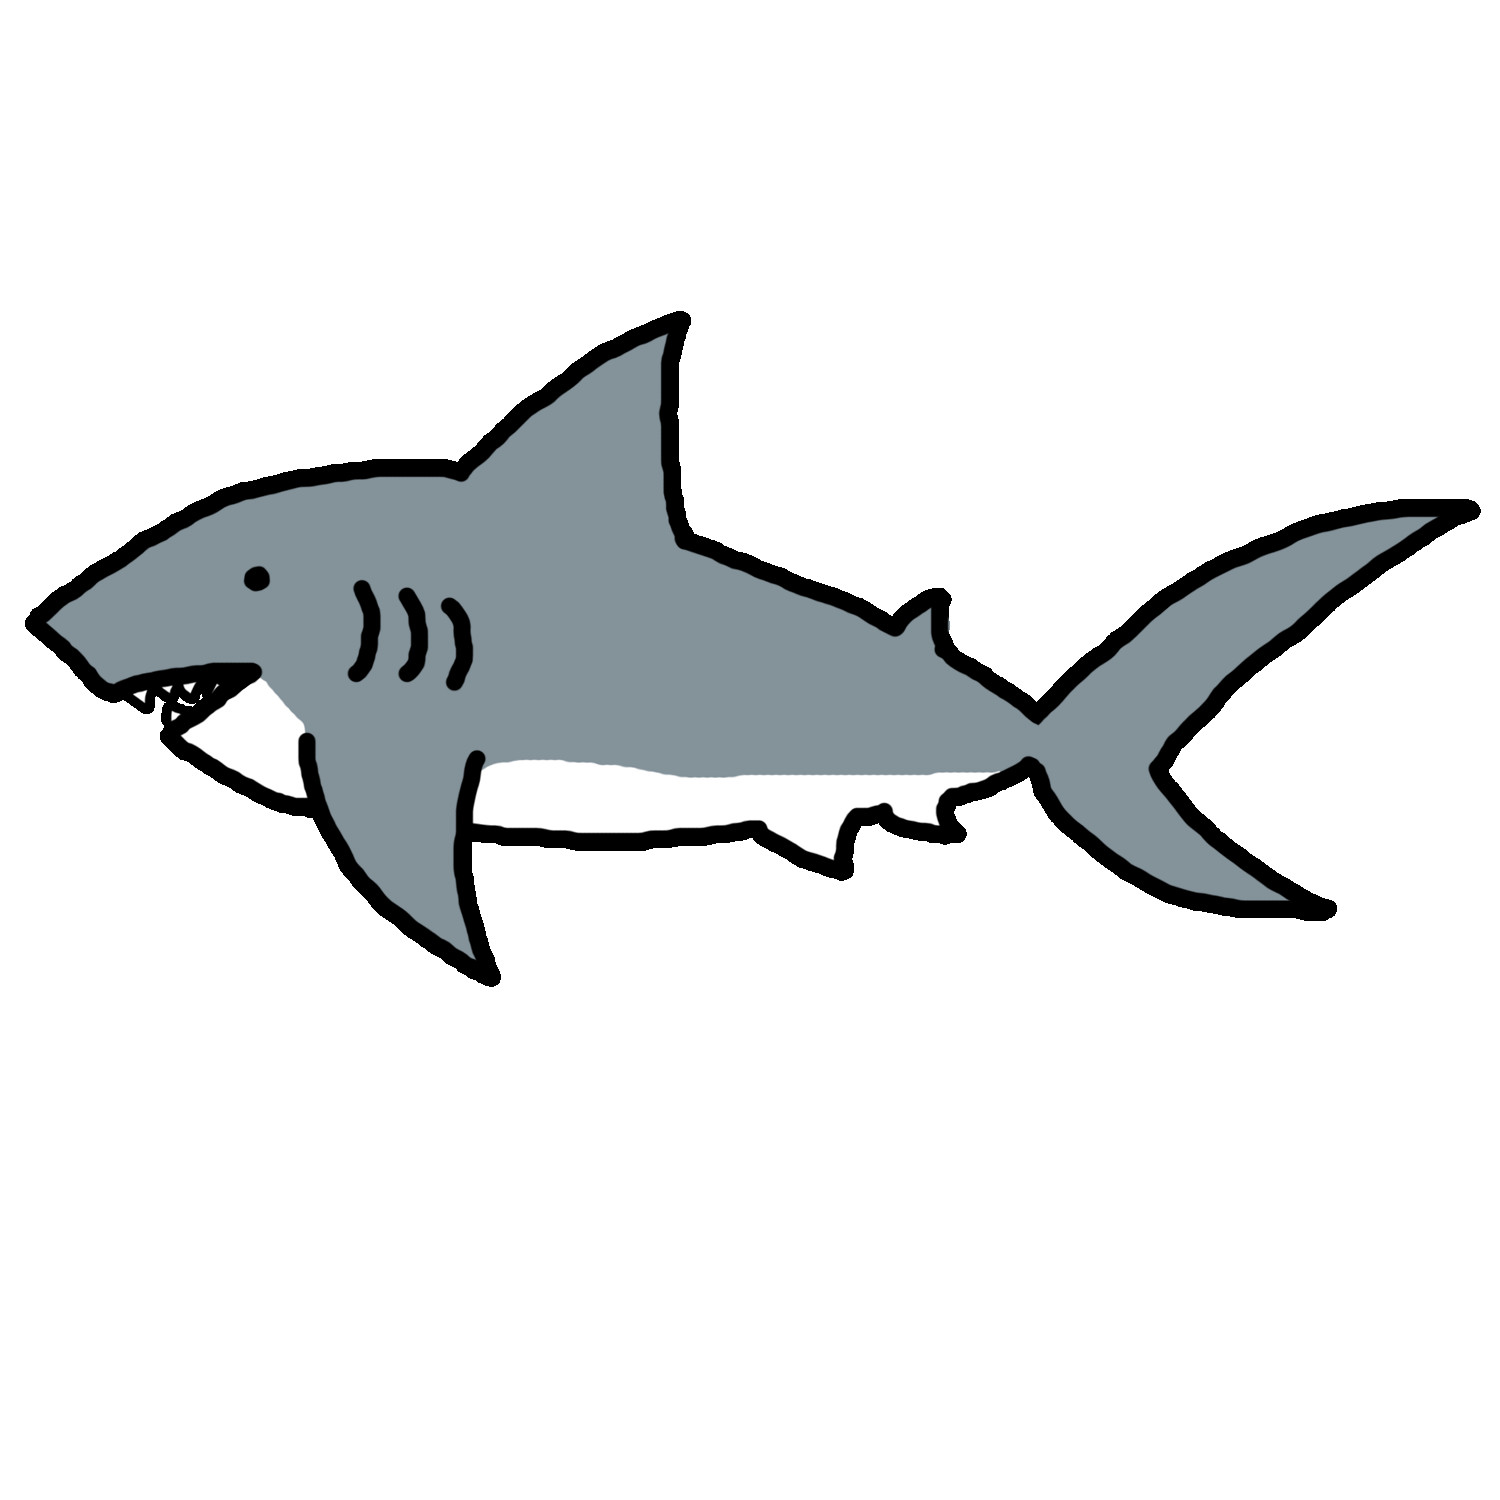 hight resolution of 1500x1500 clip art shark thatswhatsup